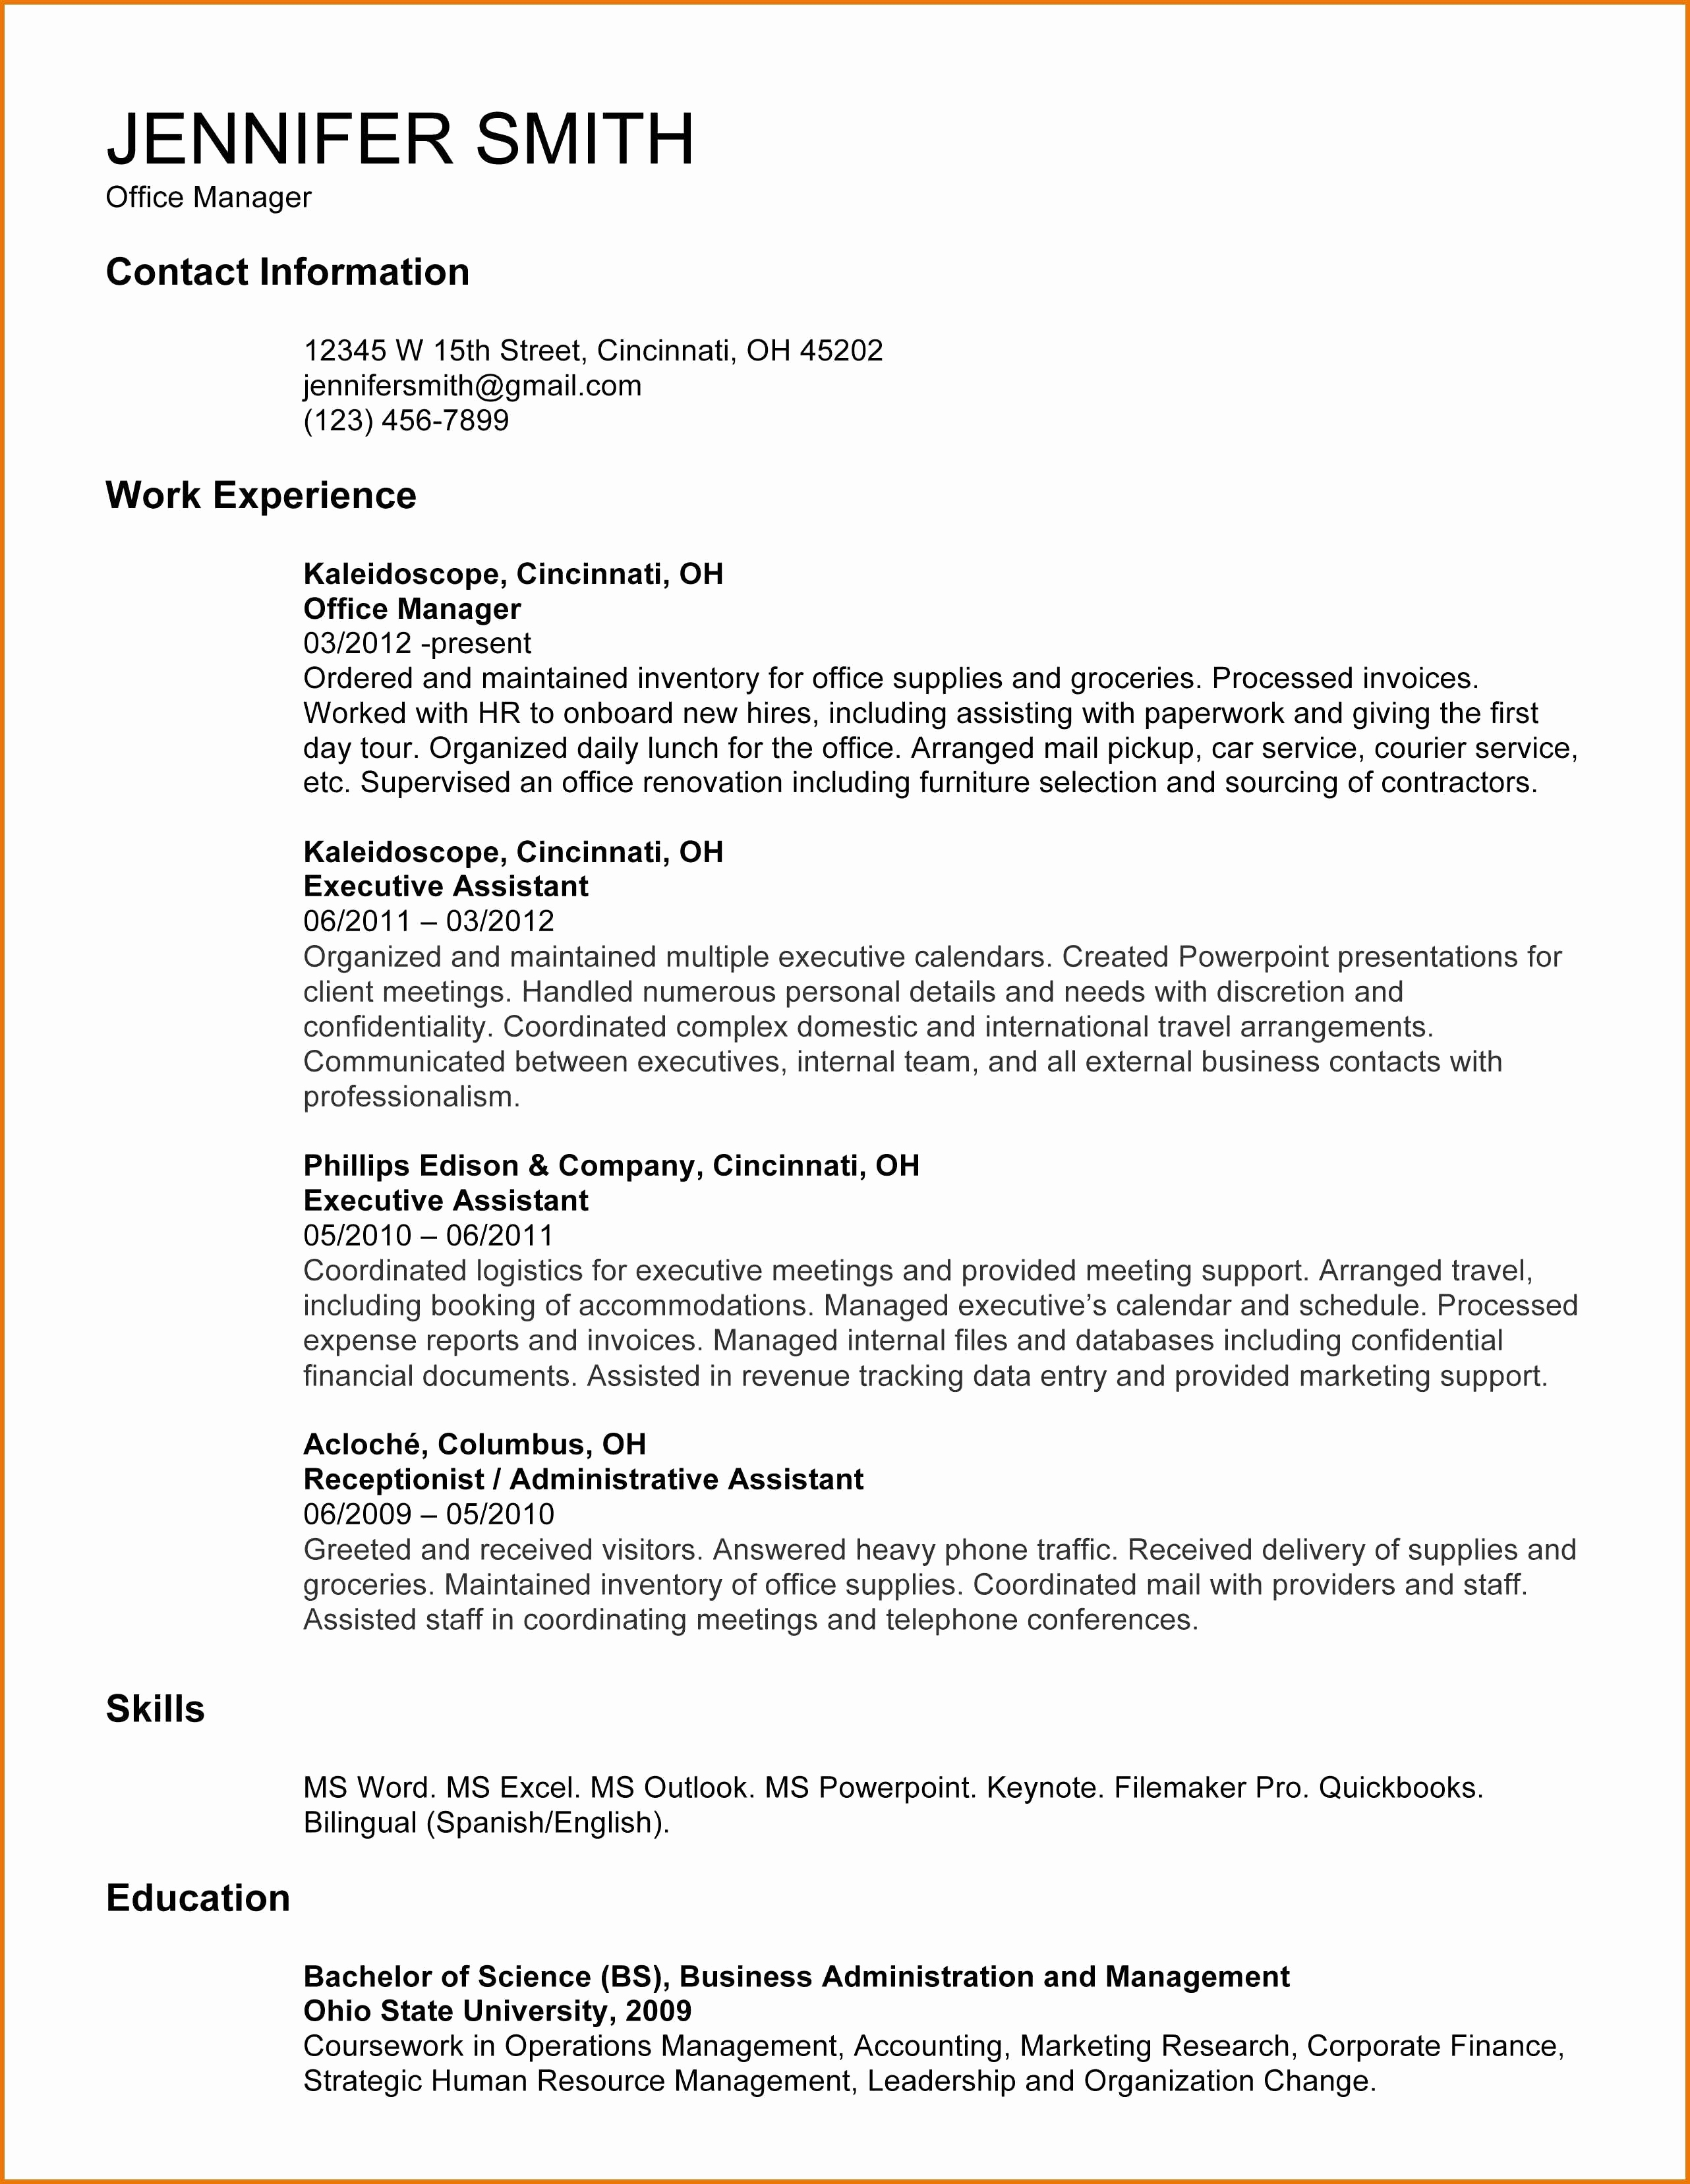 Invoice Letter Template for Professional Services - Best Resume and Cover Letter Template